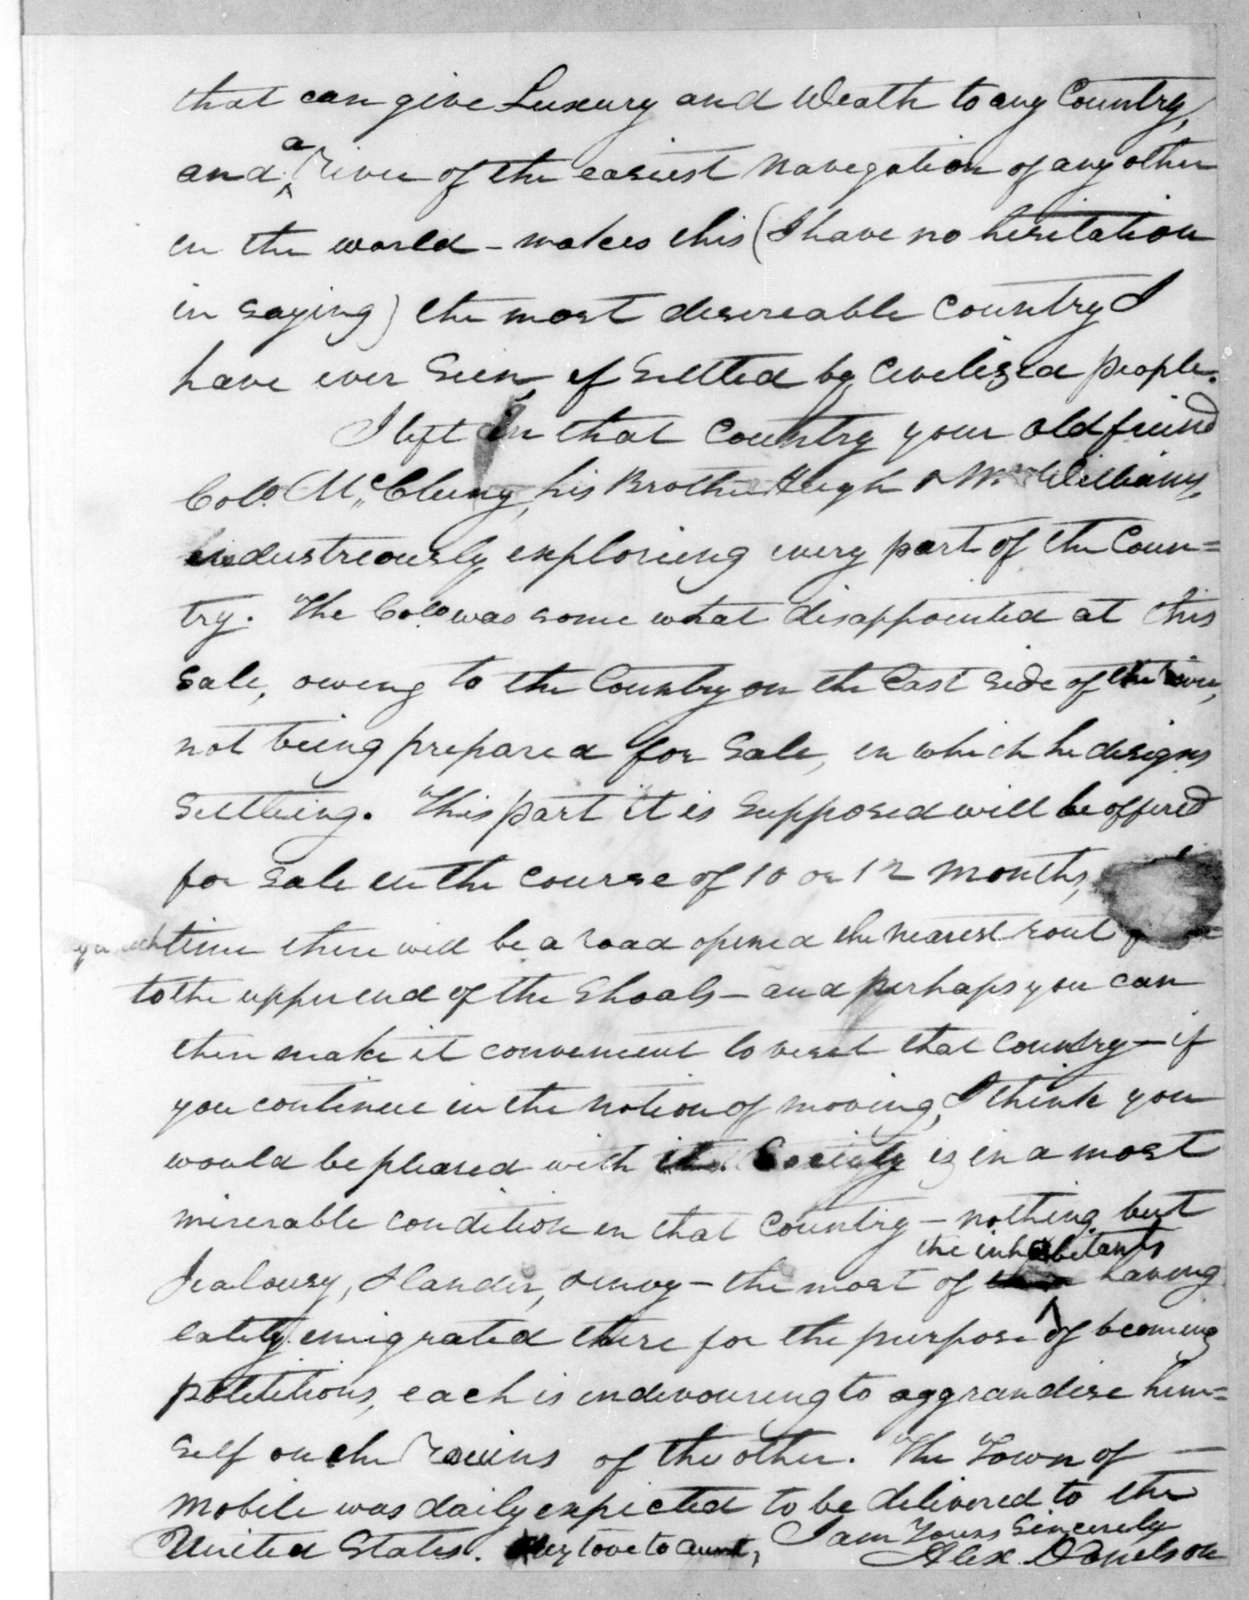 Alexander Donelson to Andrew Jackson, October 9, 1811